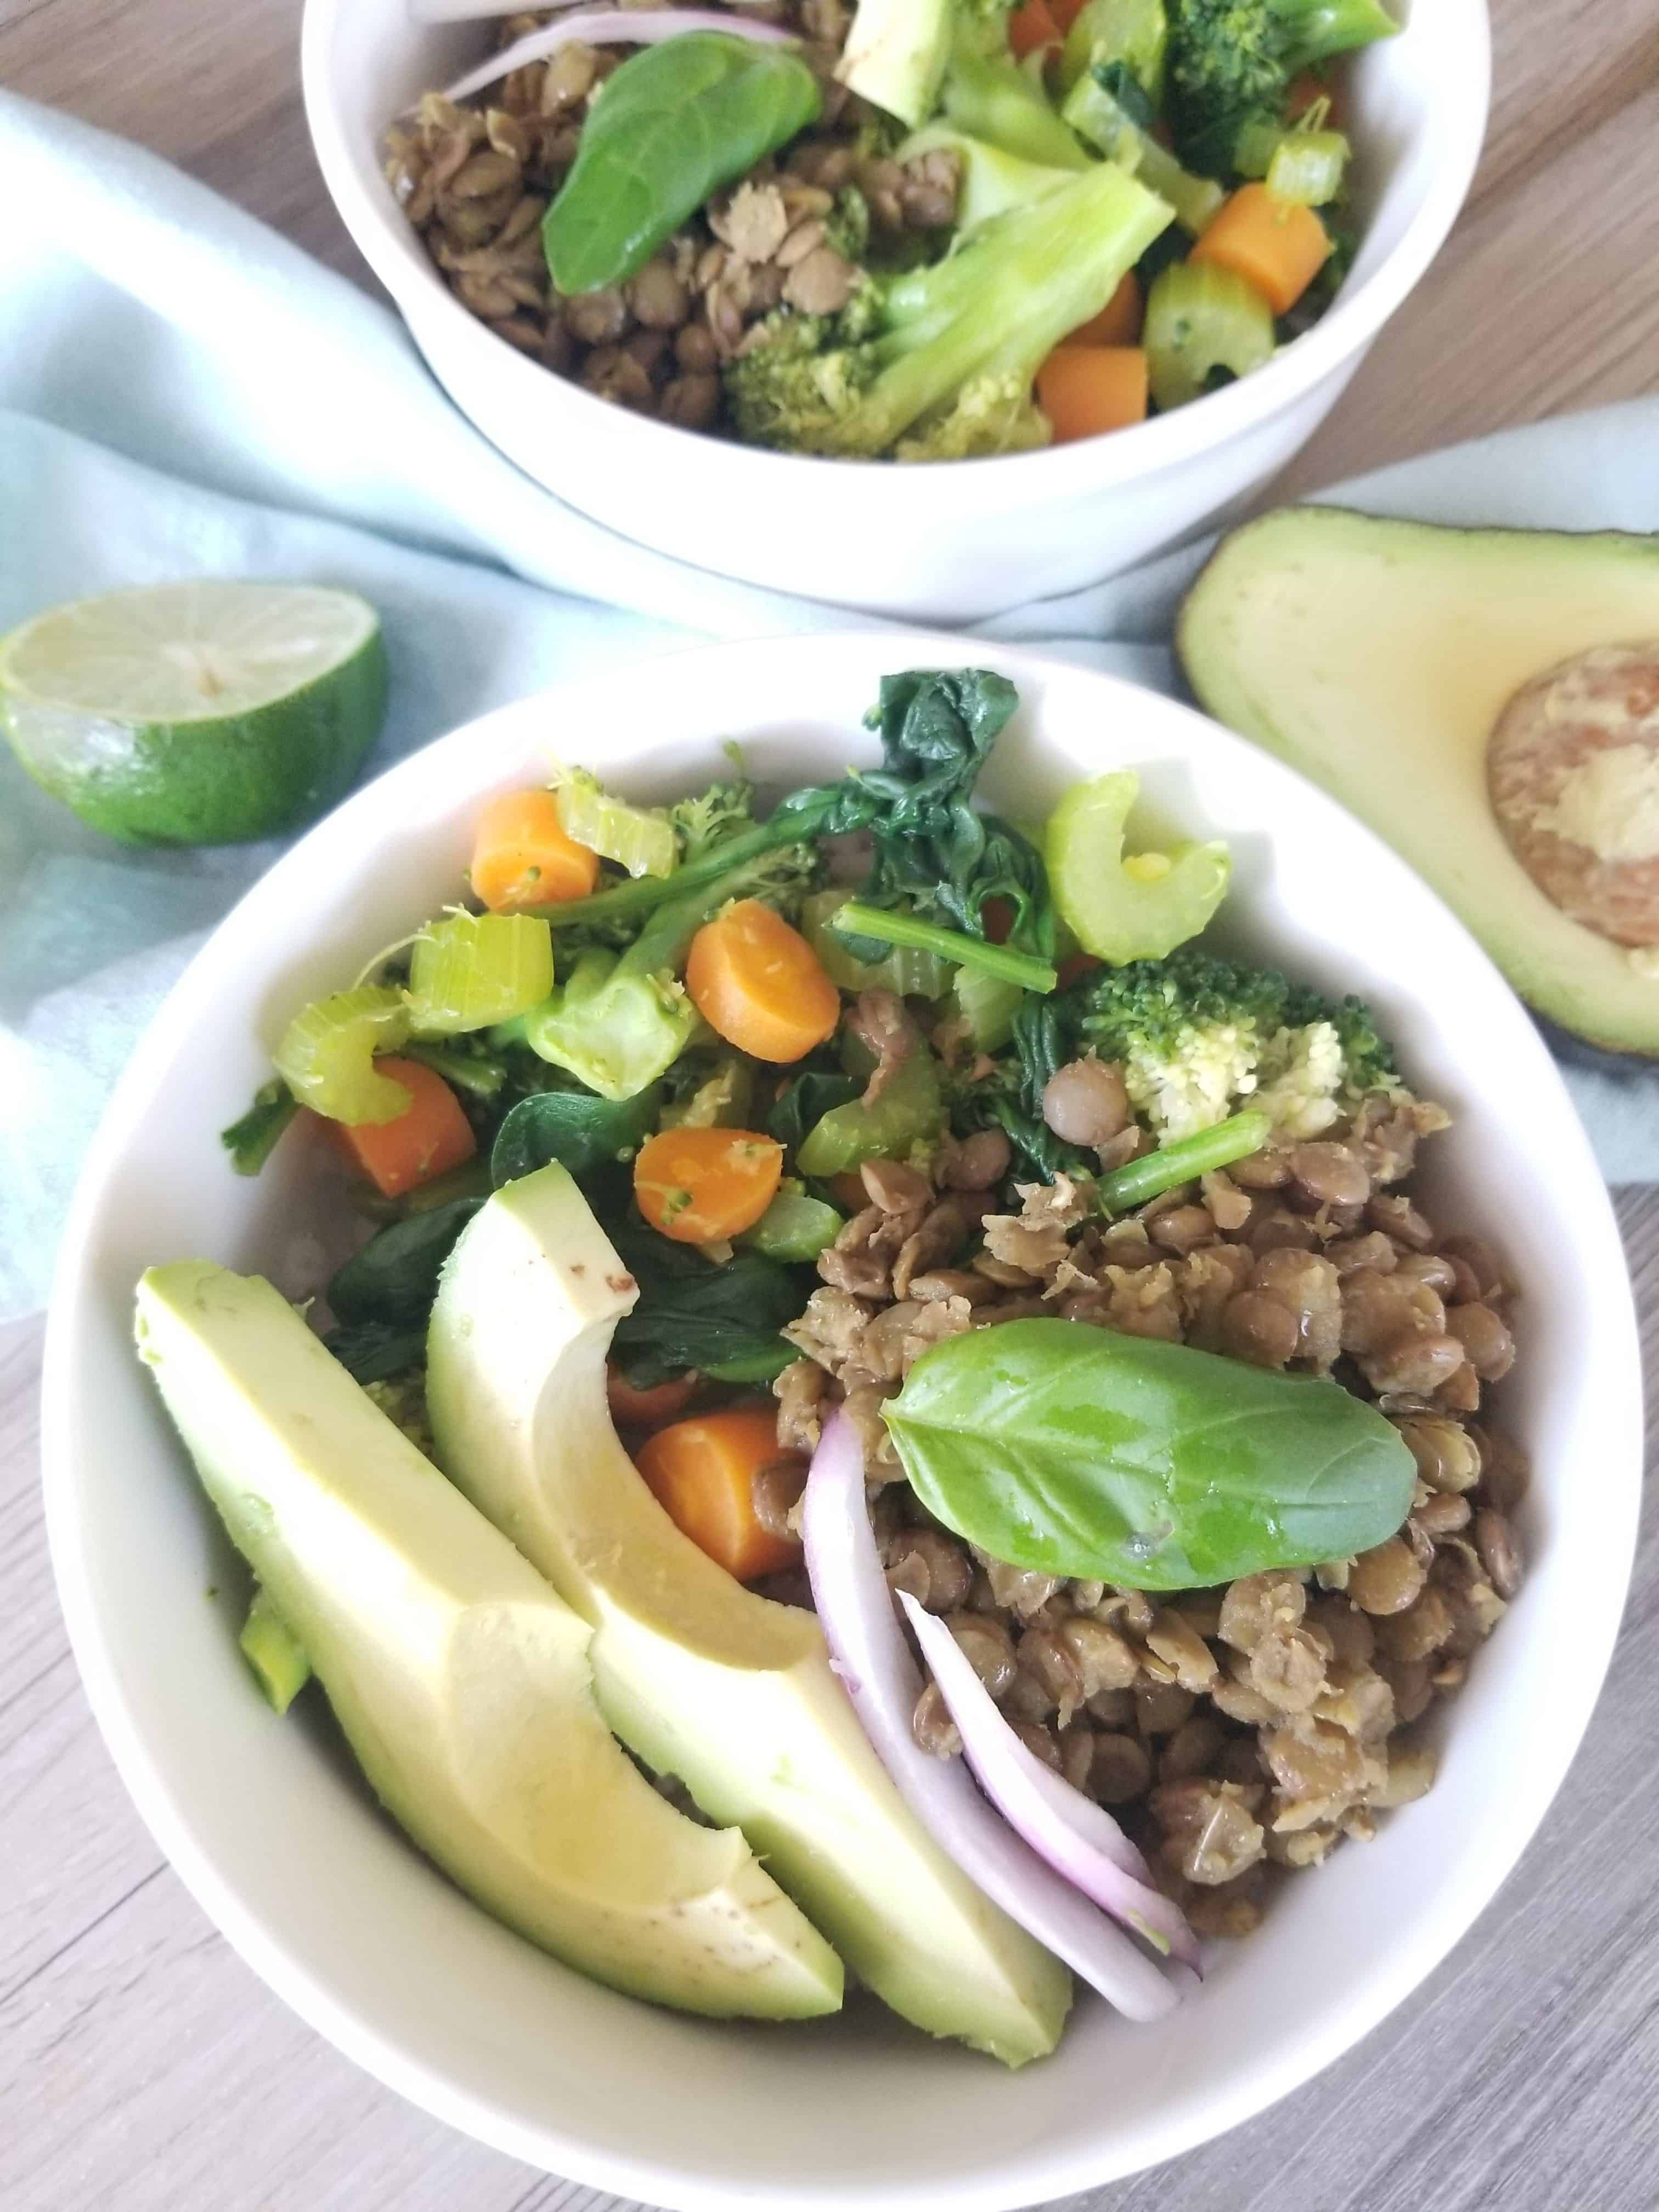 Healthy detox power bowl recipe that is easy, on a budget, gluten free, oil free, plant based vegan. Simple and quick healthy and clean eating dinner recipe with vegetables, brown rice, lentils, avocado, and more. Healthy vegan buddha bowl recipe to cleanse and detox your body. #detox #powerbowl #buddhabowl #healthyrecipe #weightloss